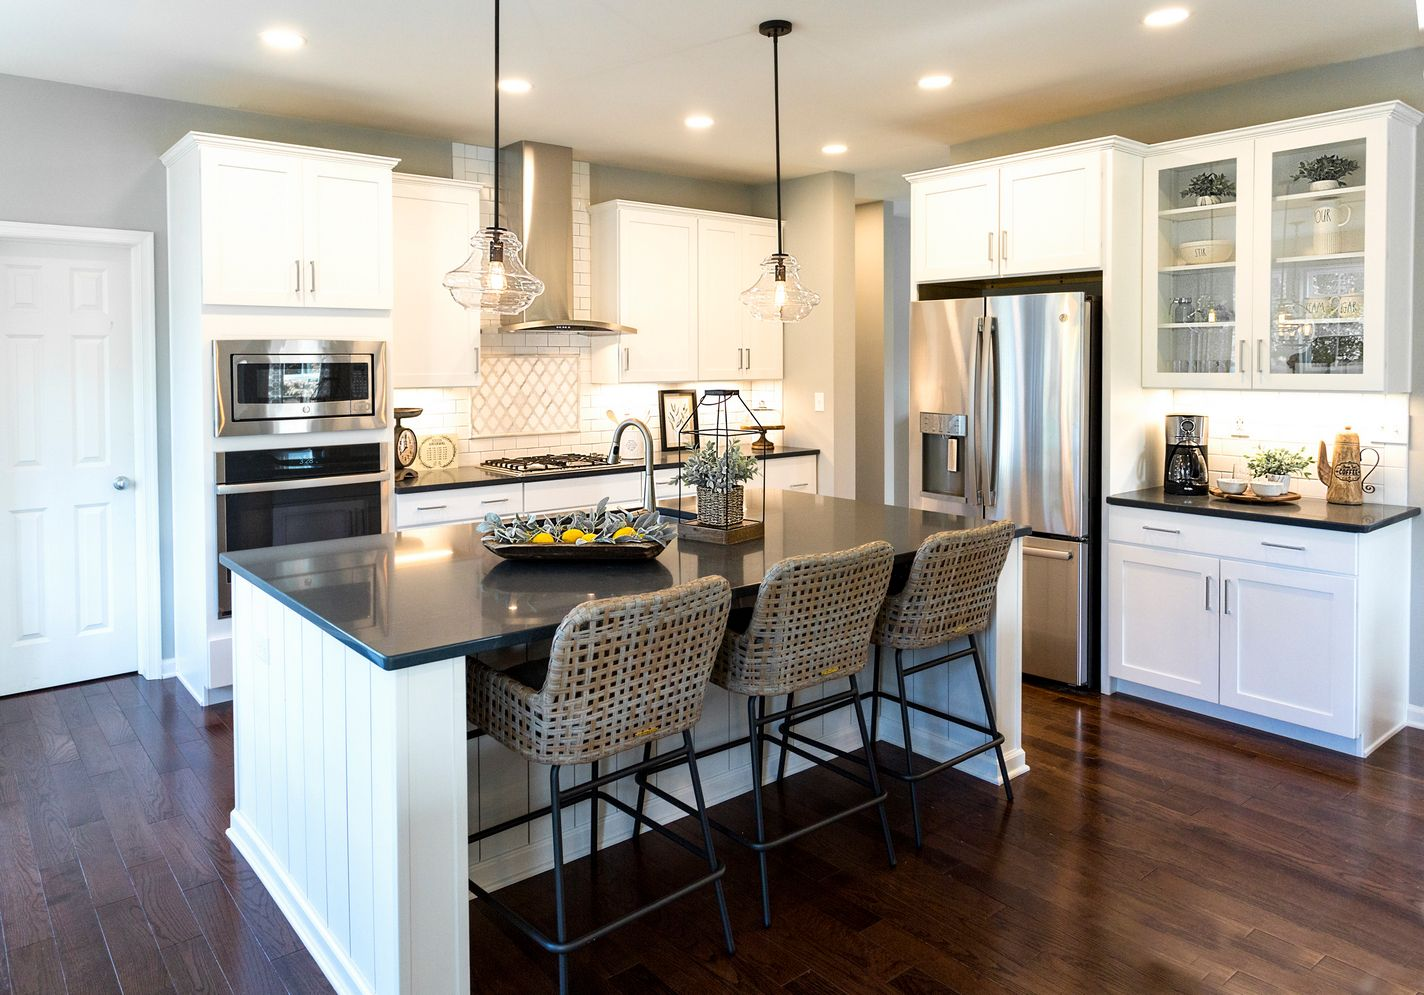 Kitchen featured in the Bellwood Country By Tuskes Homes in Allentown-Bethlehem, PA